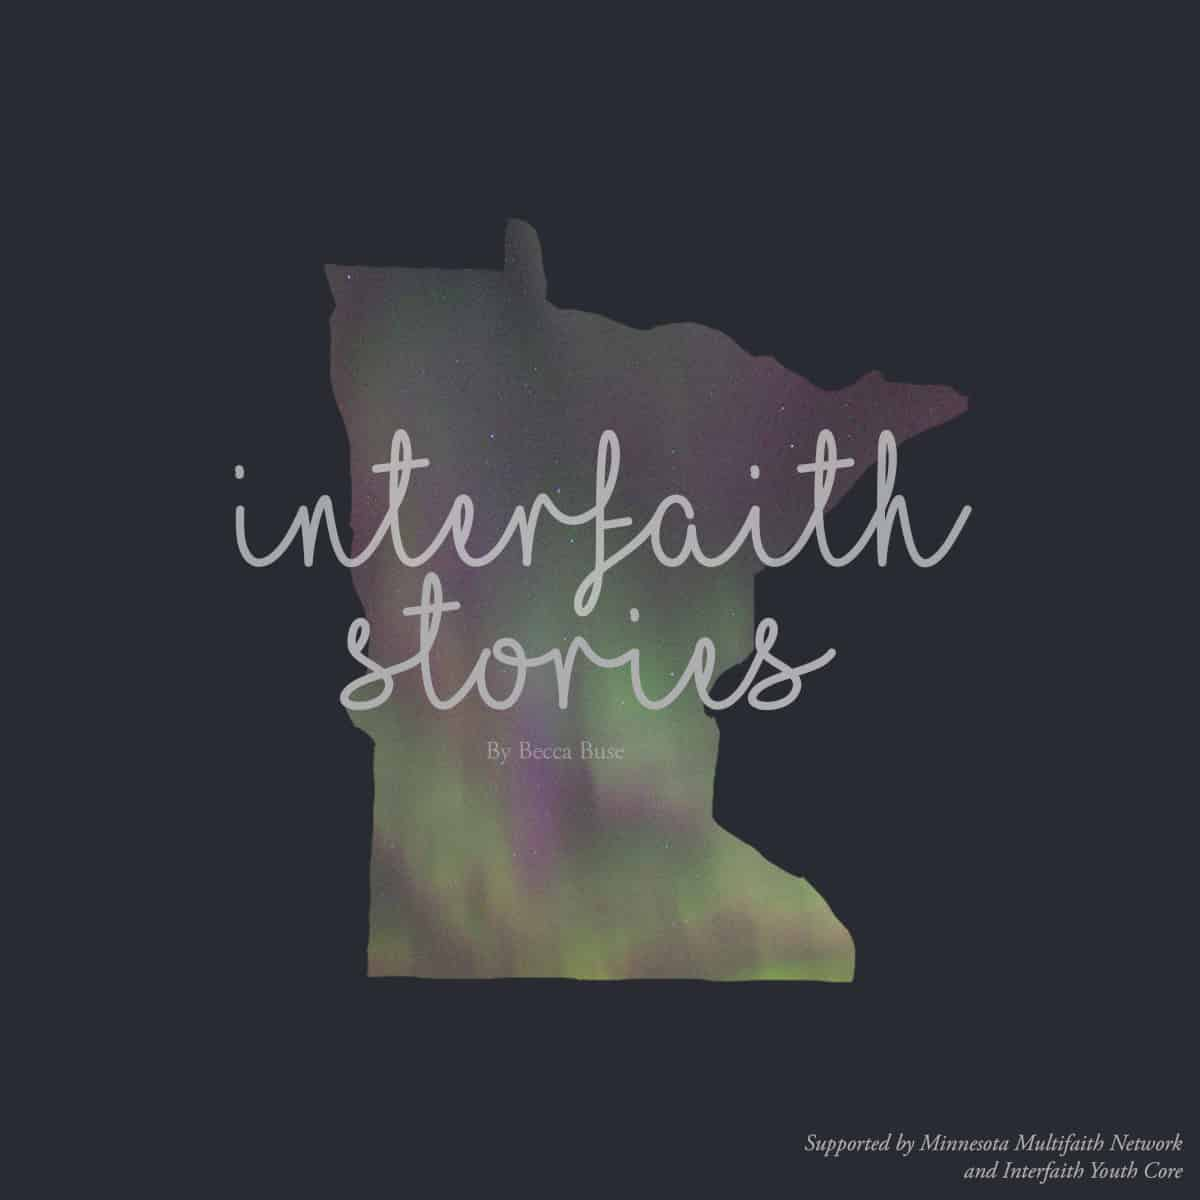 Welcome to Minnesota Interfaith Stories